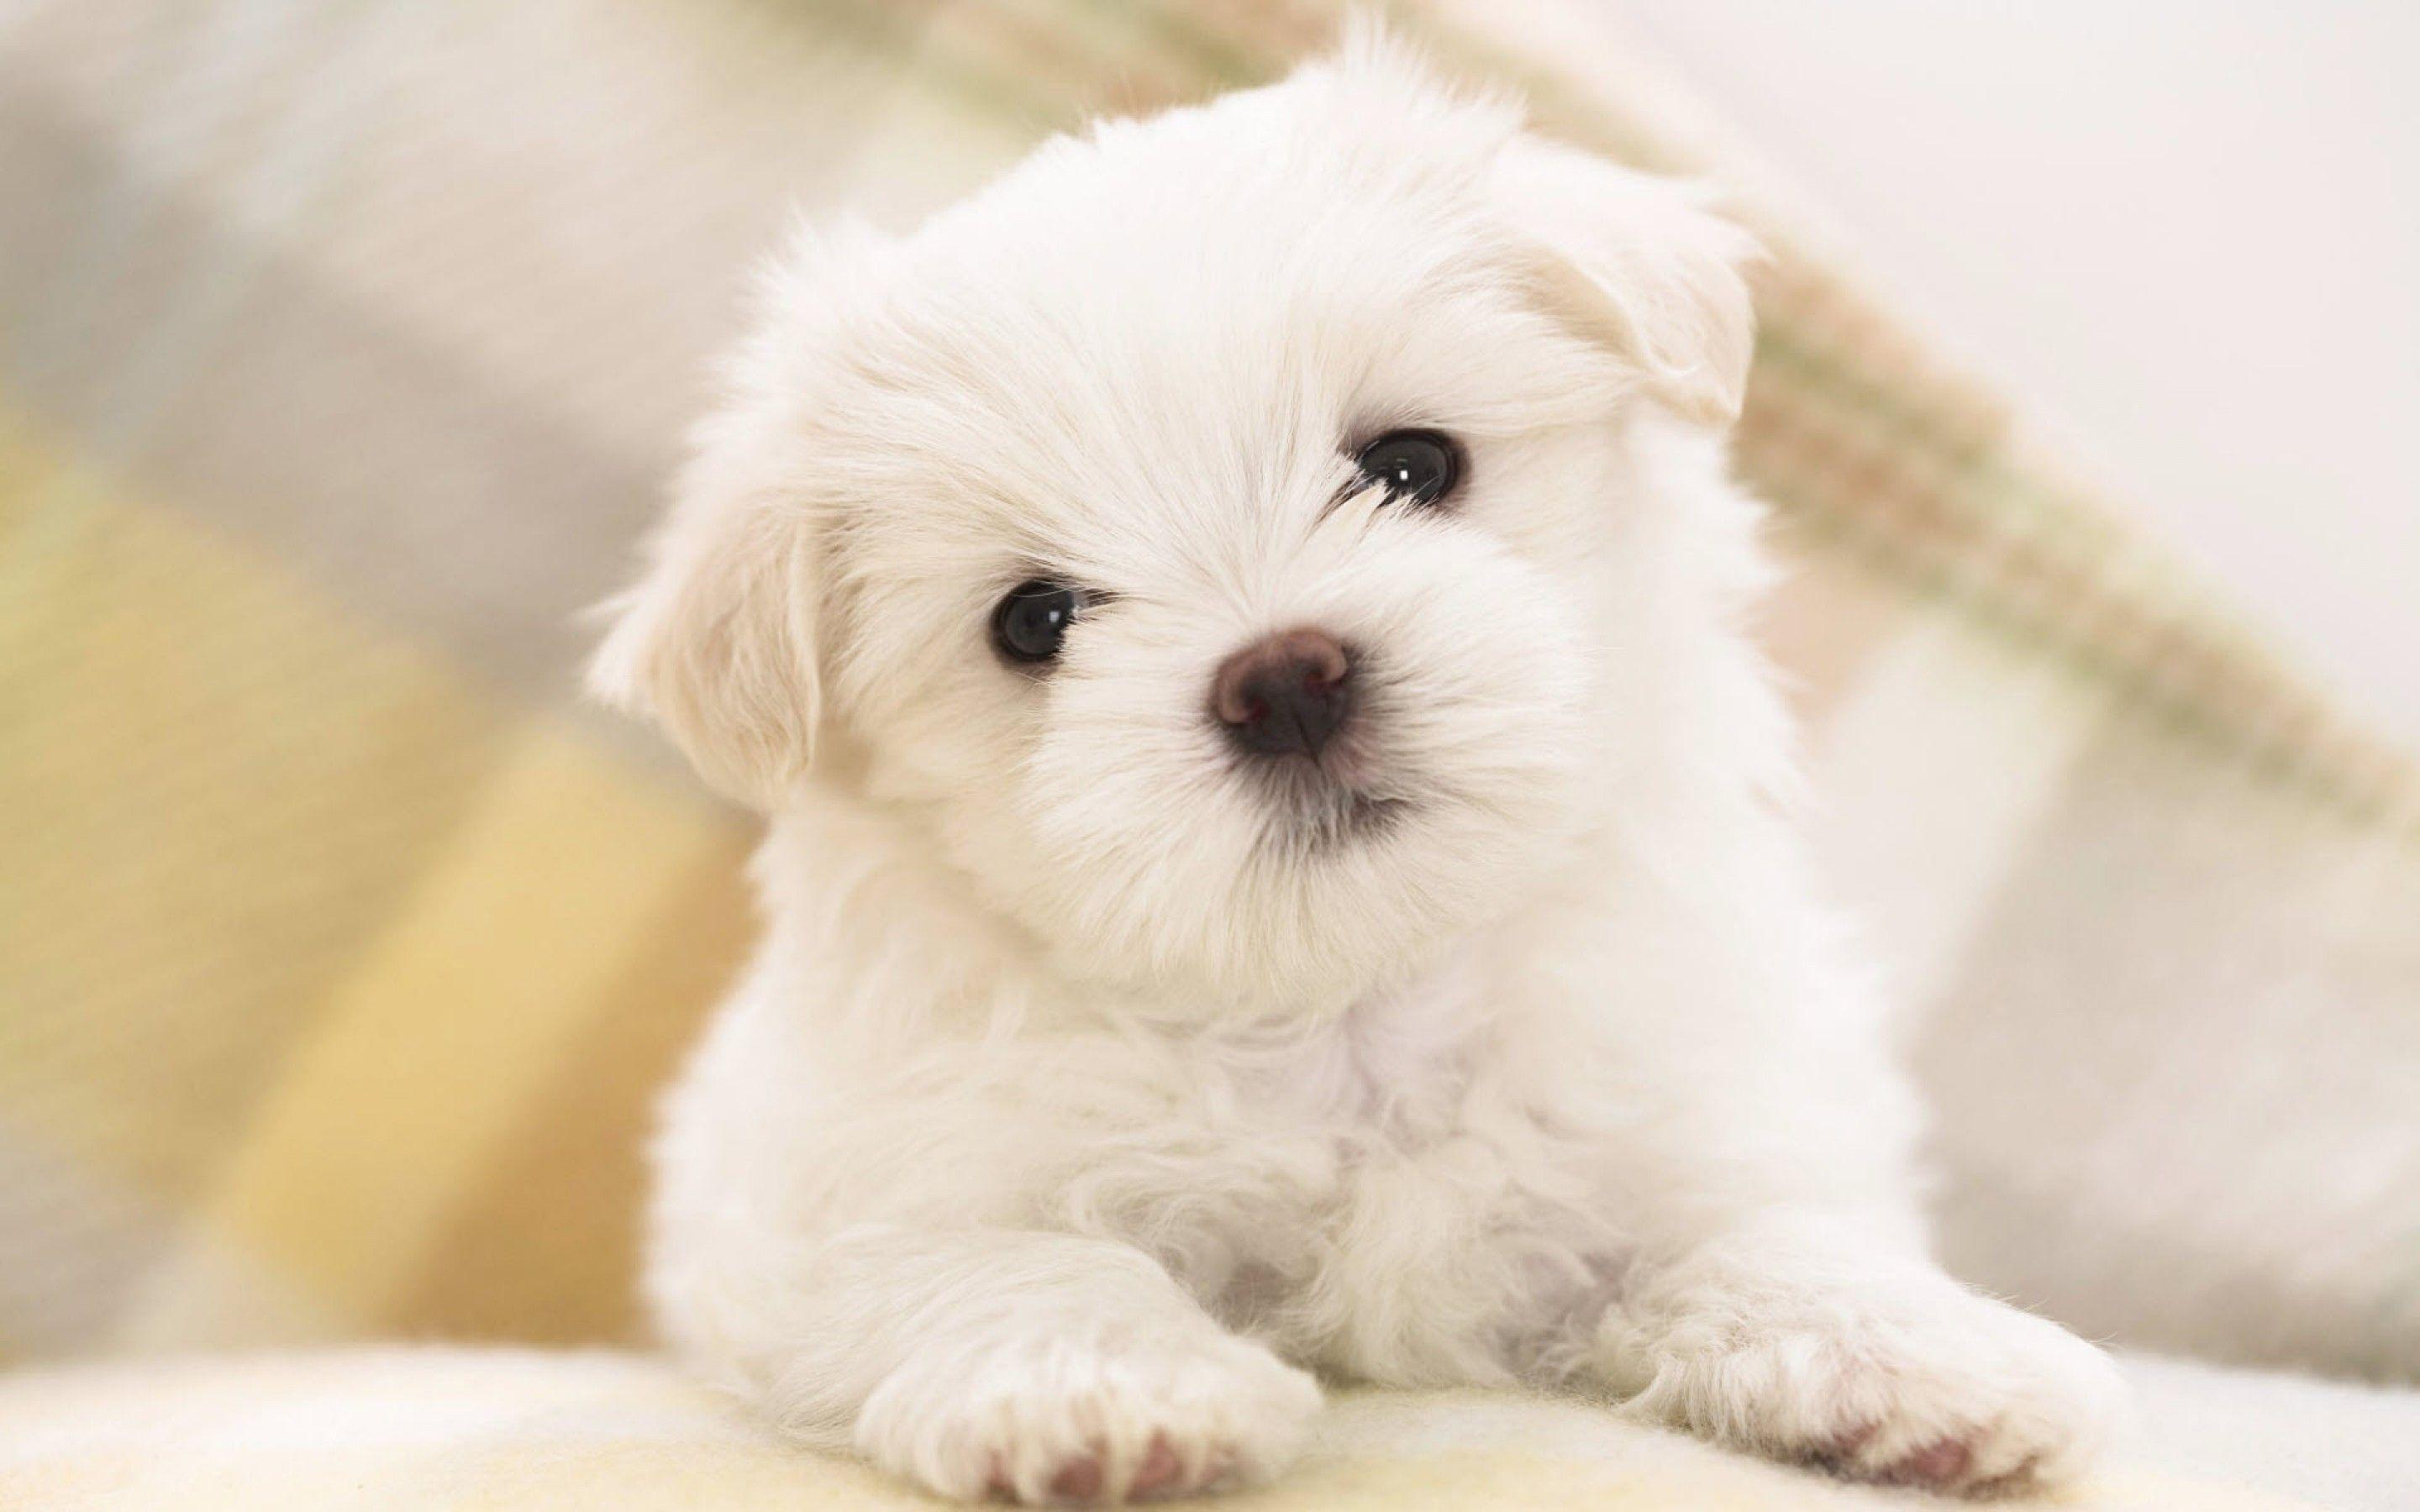 puppies wallpapers